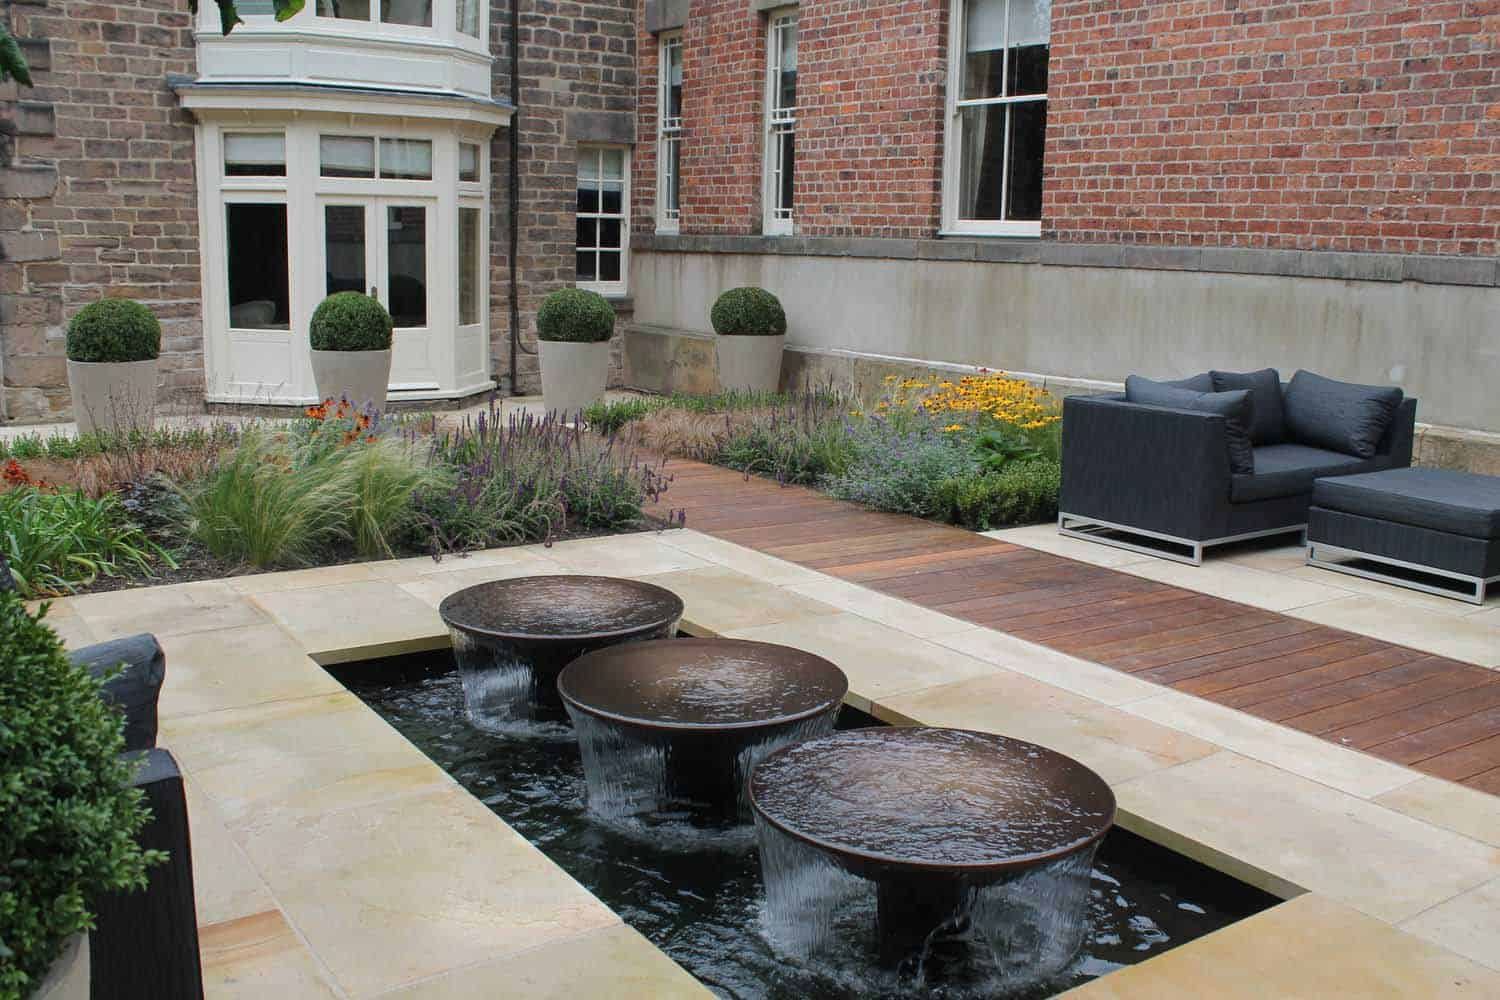 The Grove -bestall--and-co-courtyard garden-yorkshire-modern-planting-dutch-planting Terraced Garden bestall and co Beautiful Planting Planting Design Dry Stone Wall English country classic garden Kat Weatherill